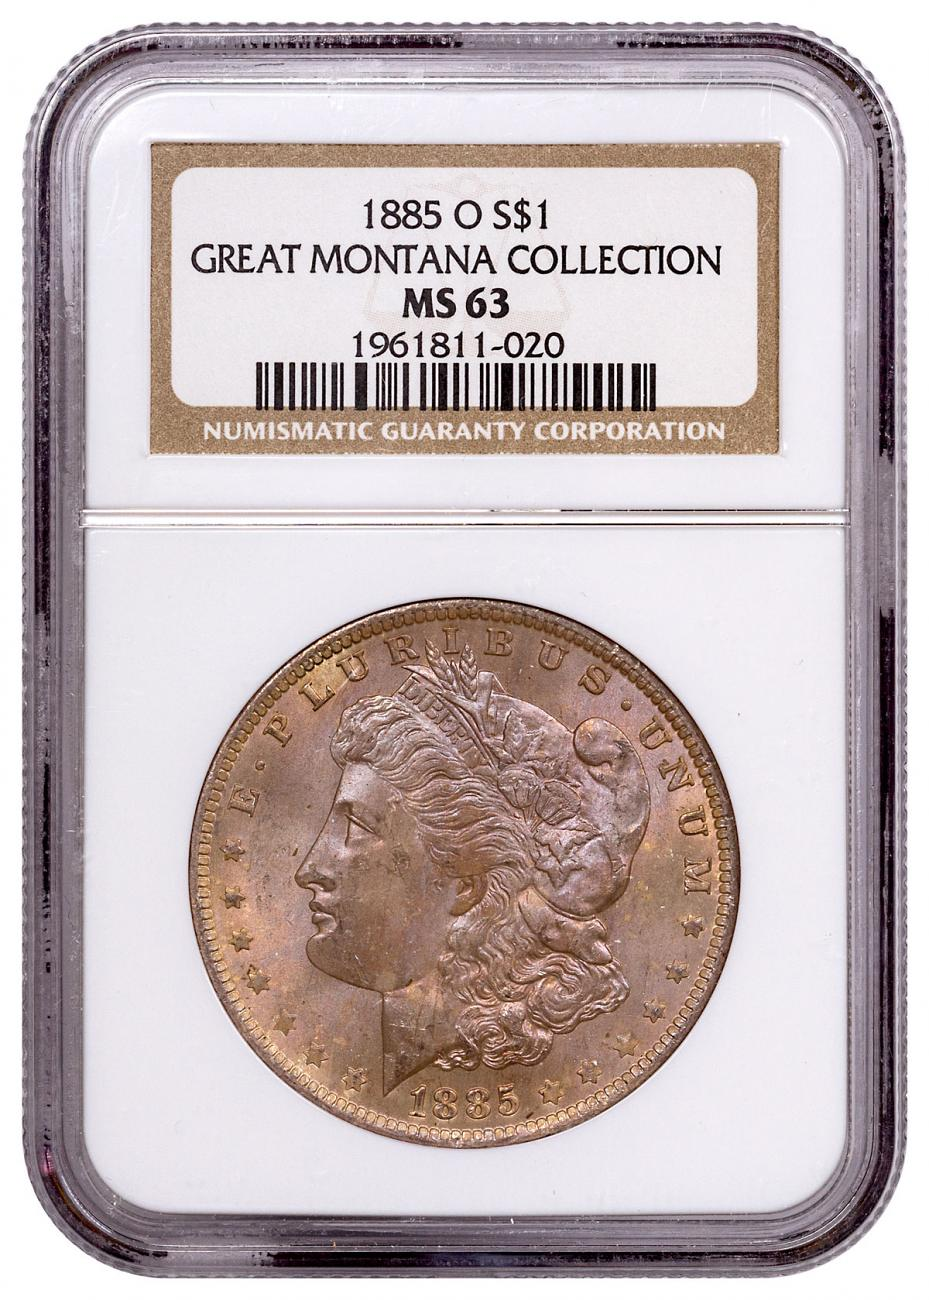 1885-O Silver Morgan Dollar From the Great Montana Collection NGC MS63 Toned CPCR 1020